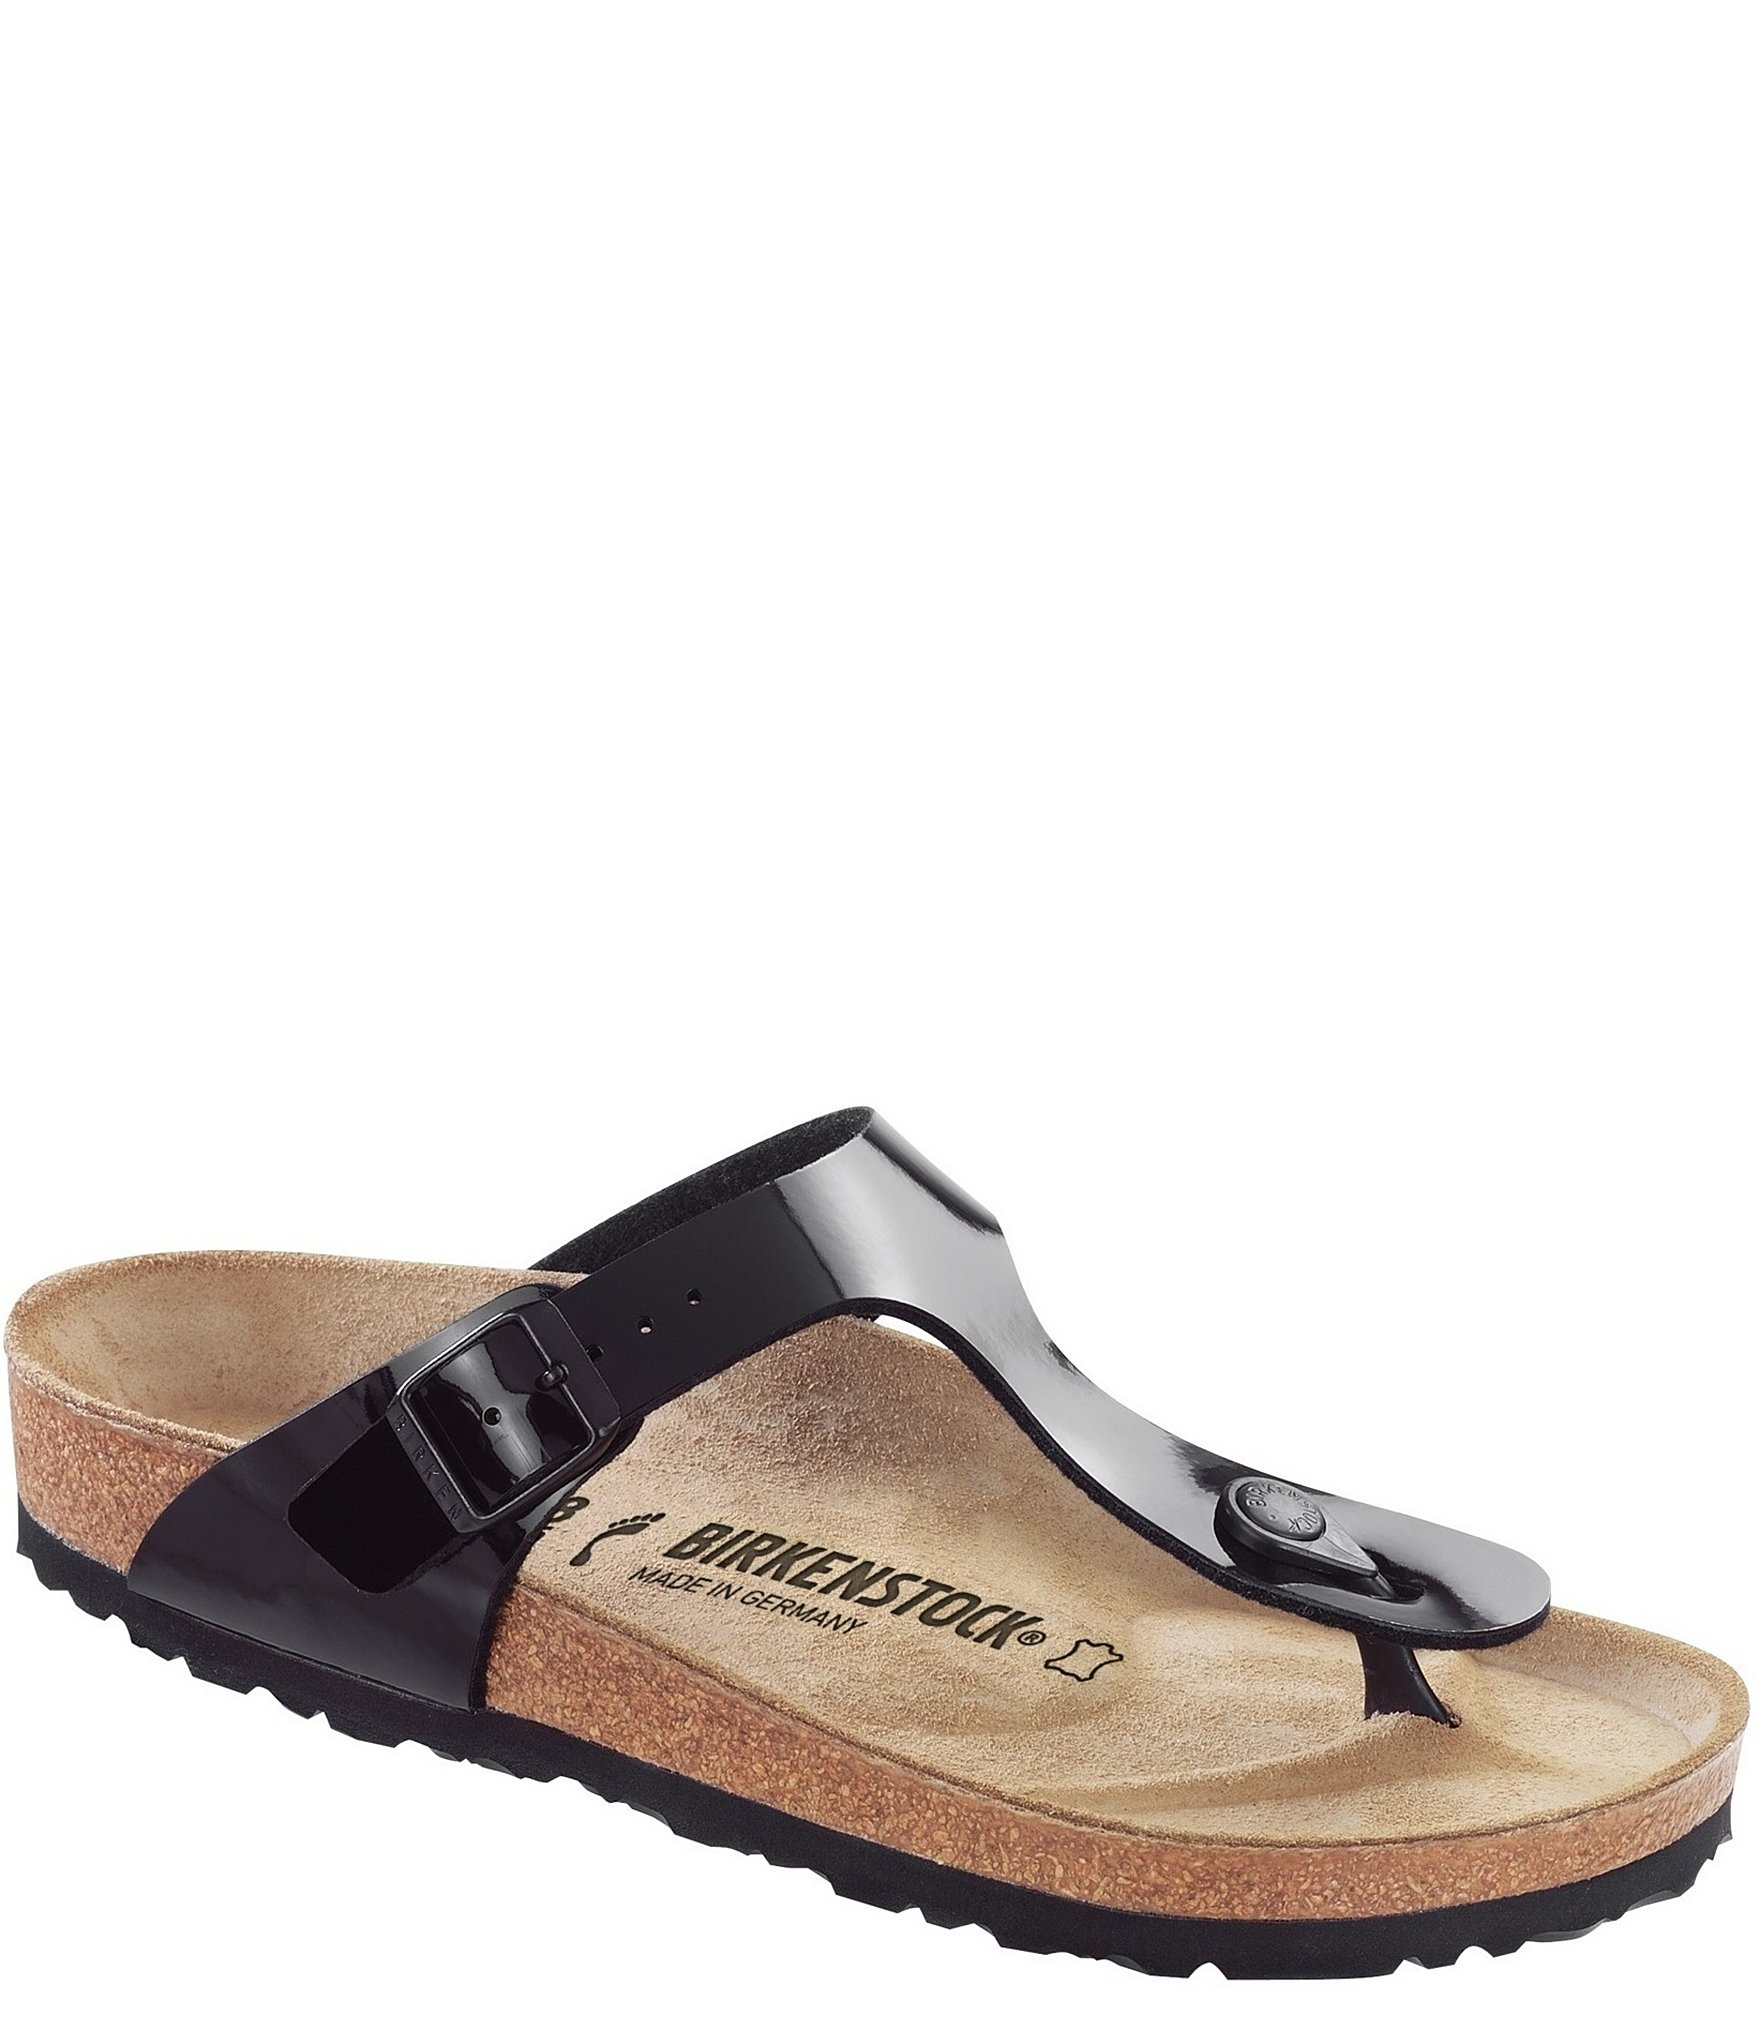 beceaa364dccd Birkenstock Women s Gizeh Patent Thong Style Slip-On Sandals